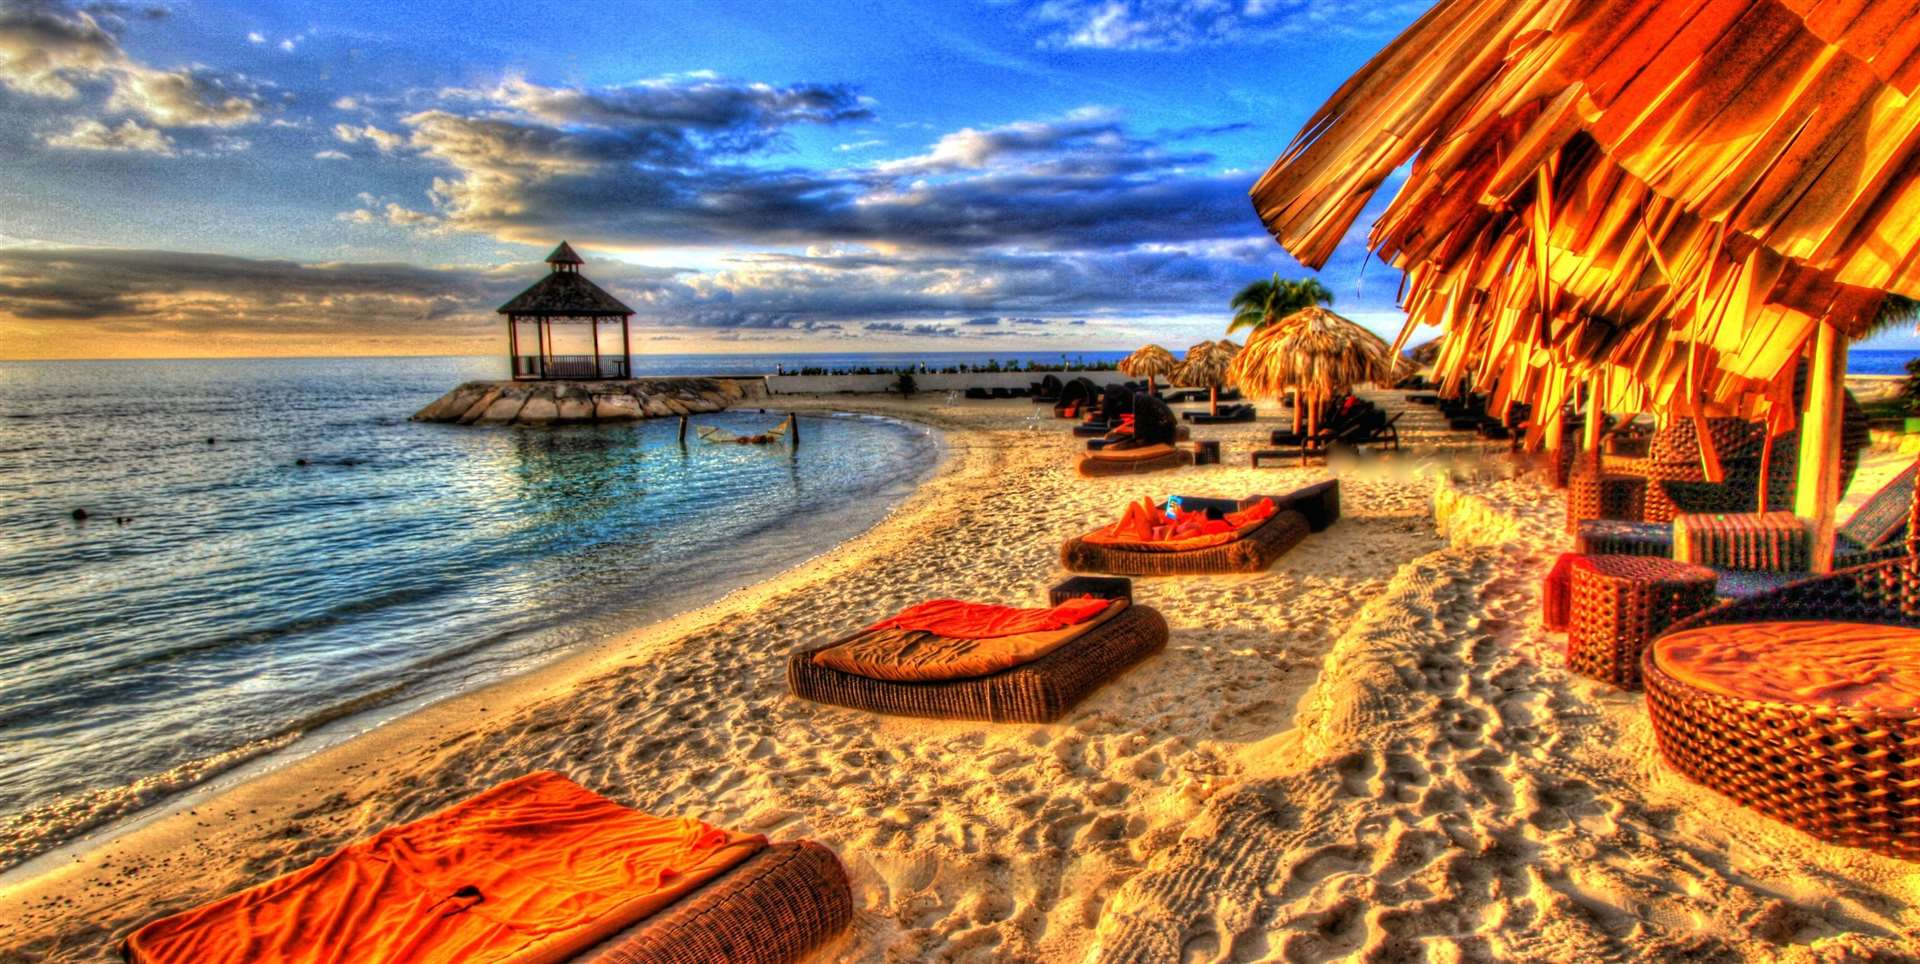 Experience the casual island vibe at Montego Bay in Jamaica.